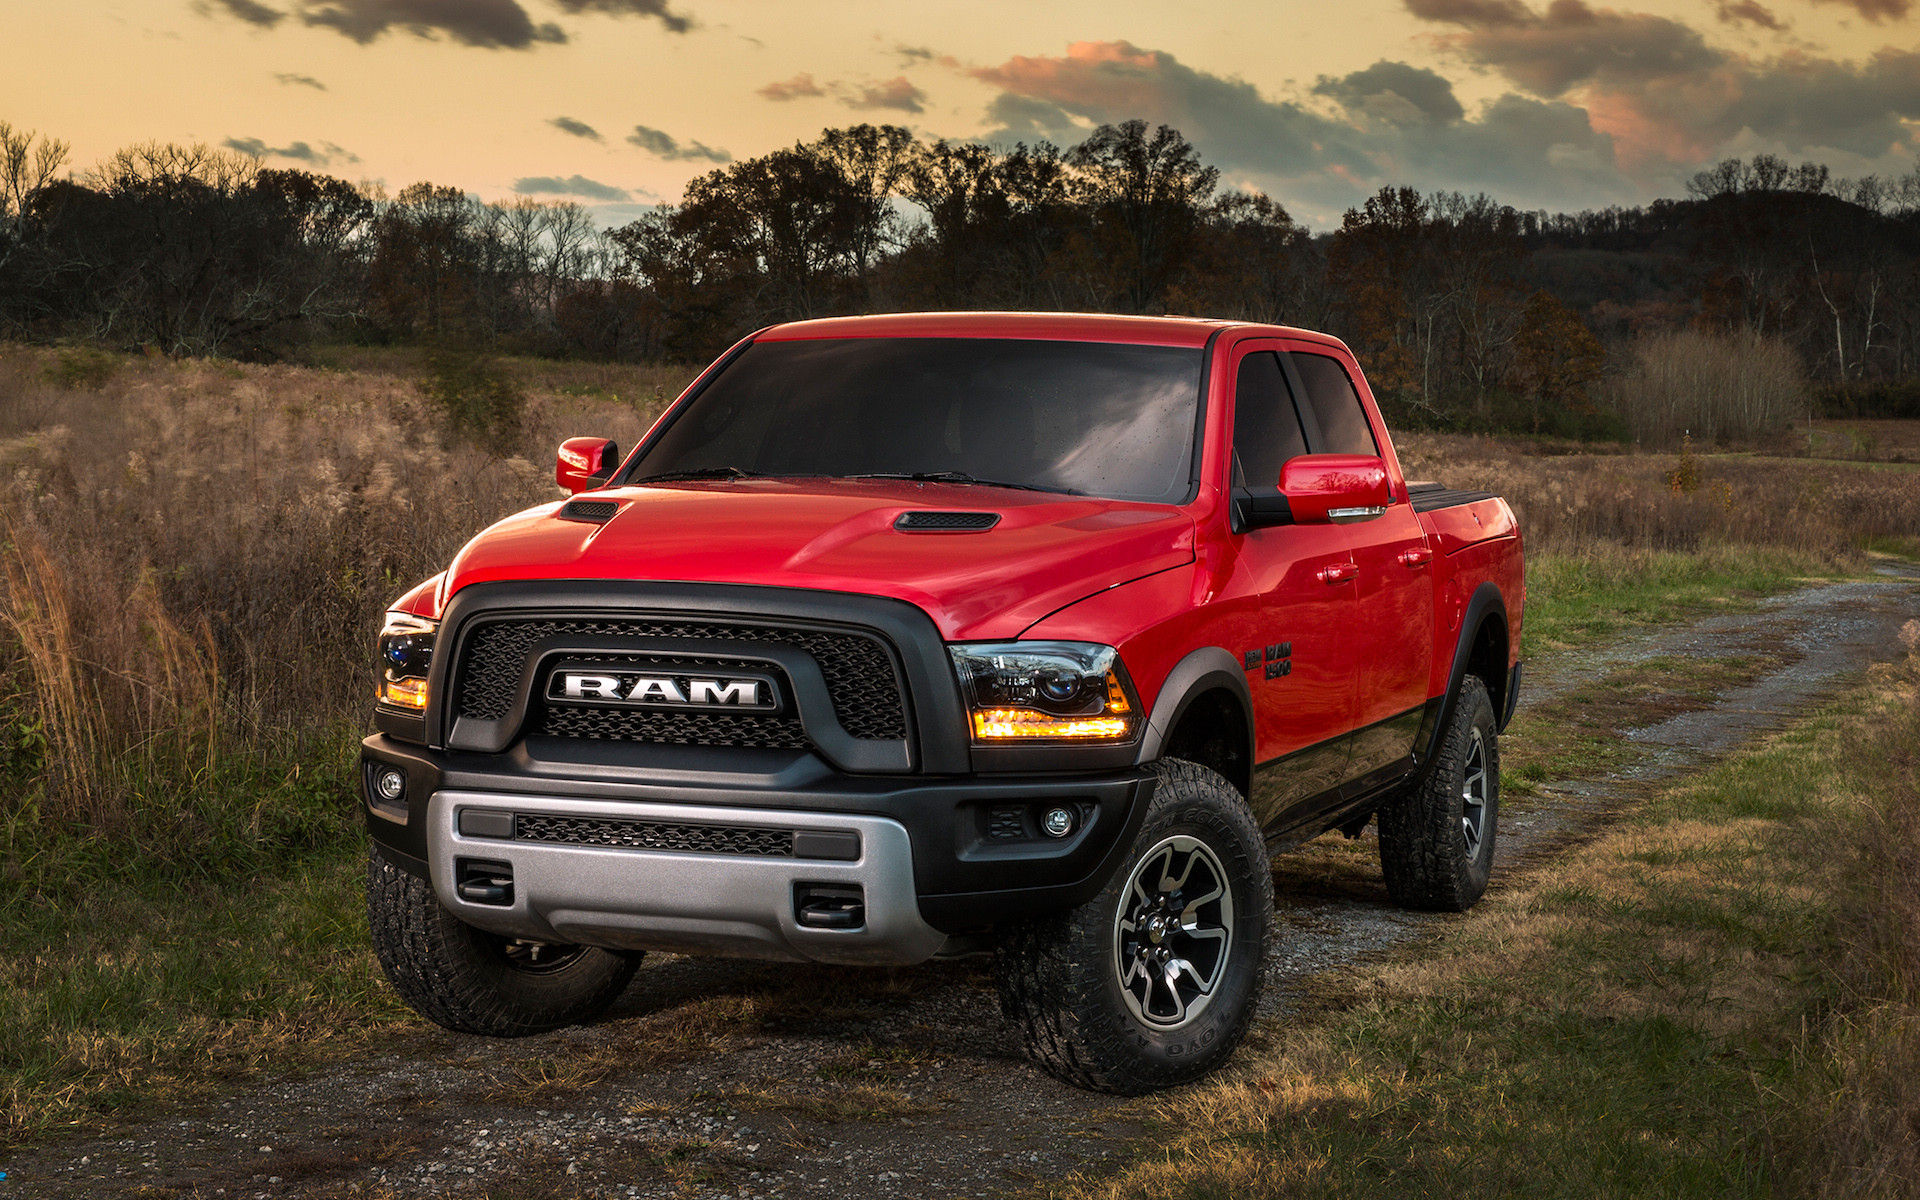 1920x1200 Newest Dodge Ram Rebel Photos and Pictures, Dodge Ram Rebel HD Widescreen  Wallpapers